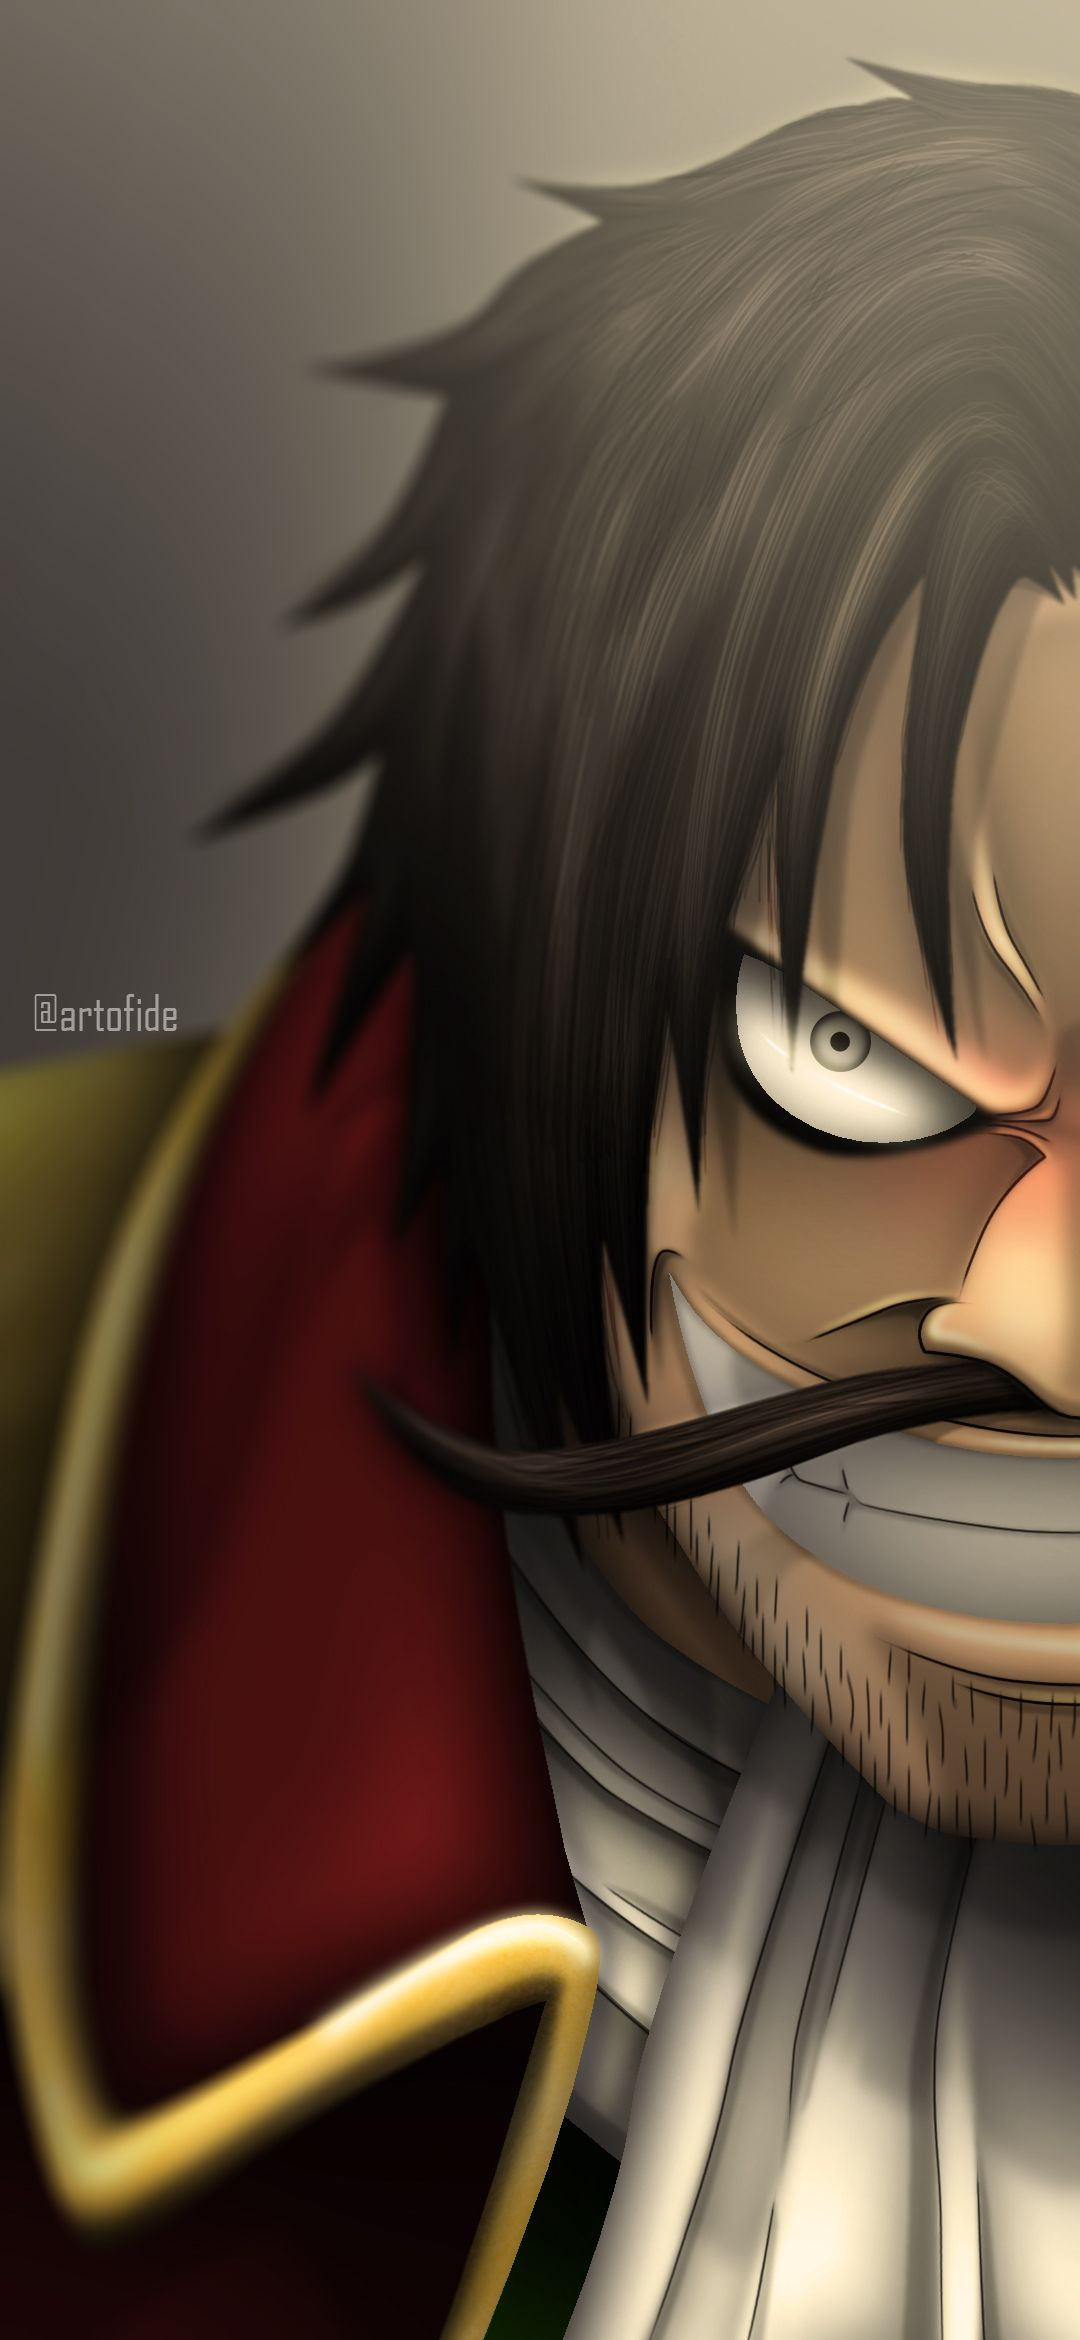 Gol D Roger By Artofide On Deviantart In 2021 One Piece Wallpaper Iphone One Piece Drawing One Piece Photos Deviantart iphone wallpaper anime